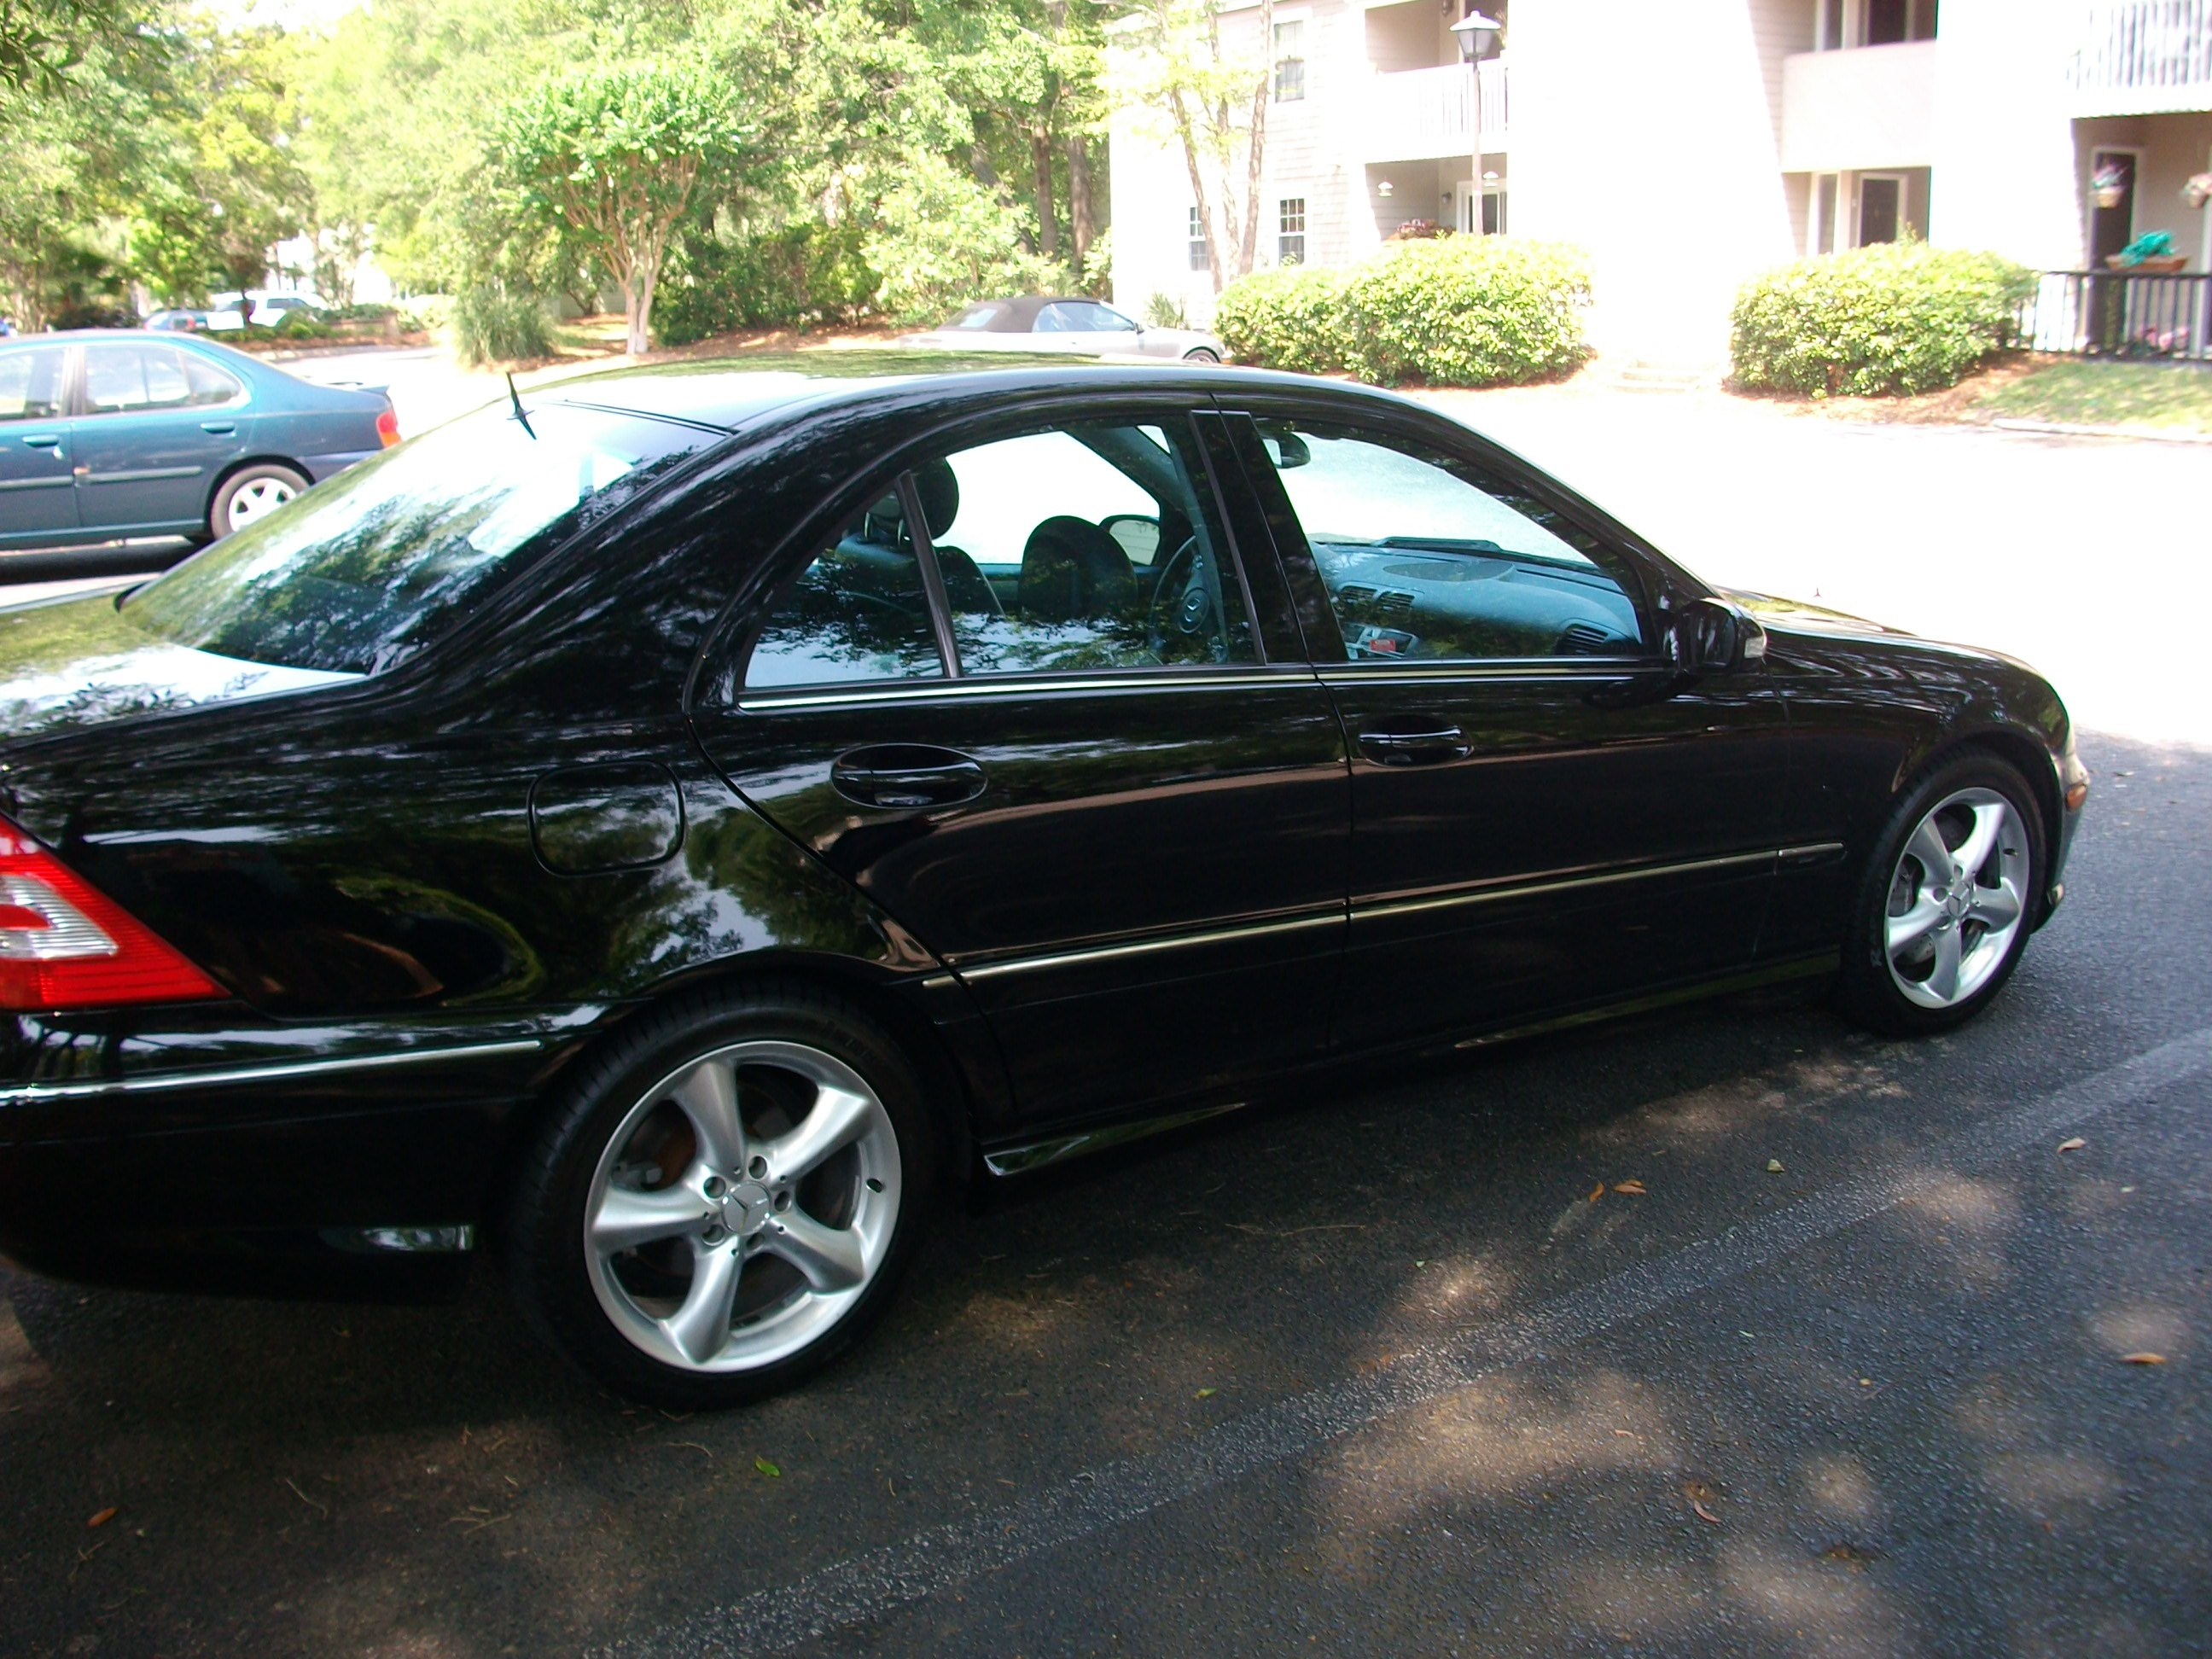 Jtwillia2 39 s 2005 mercedes benz c class c230 sport sedan 4d for 2005 mercedes benz c class